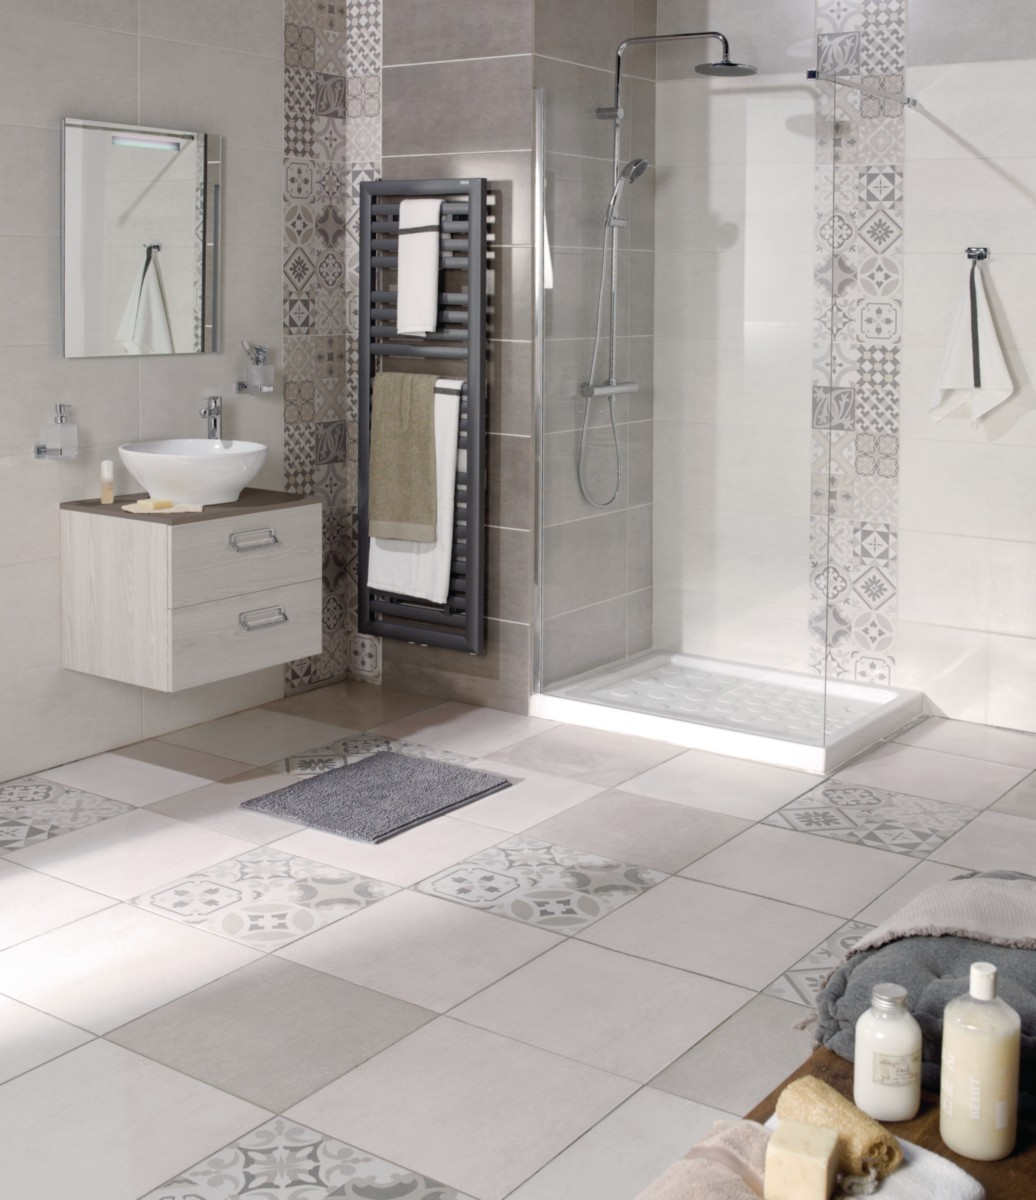 Carrelage mural salle de bain point p 28 images for Carrelage salle bain